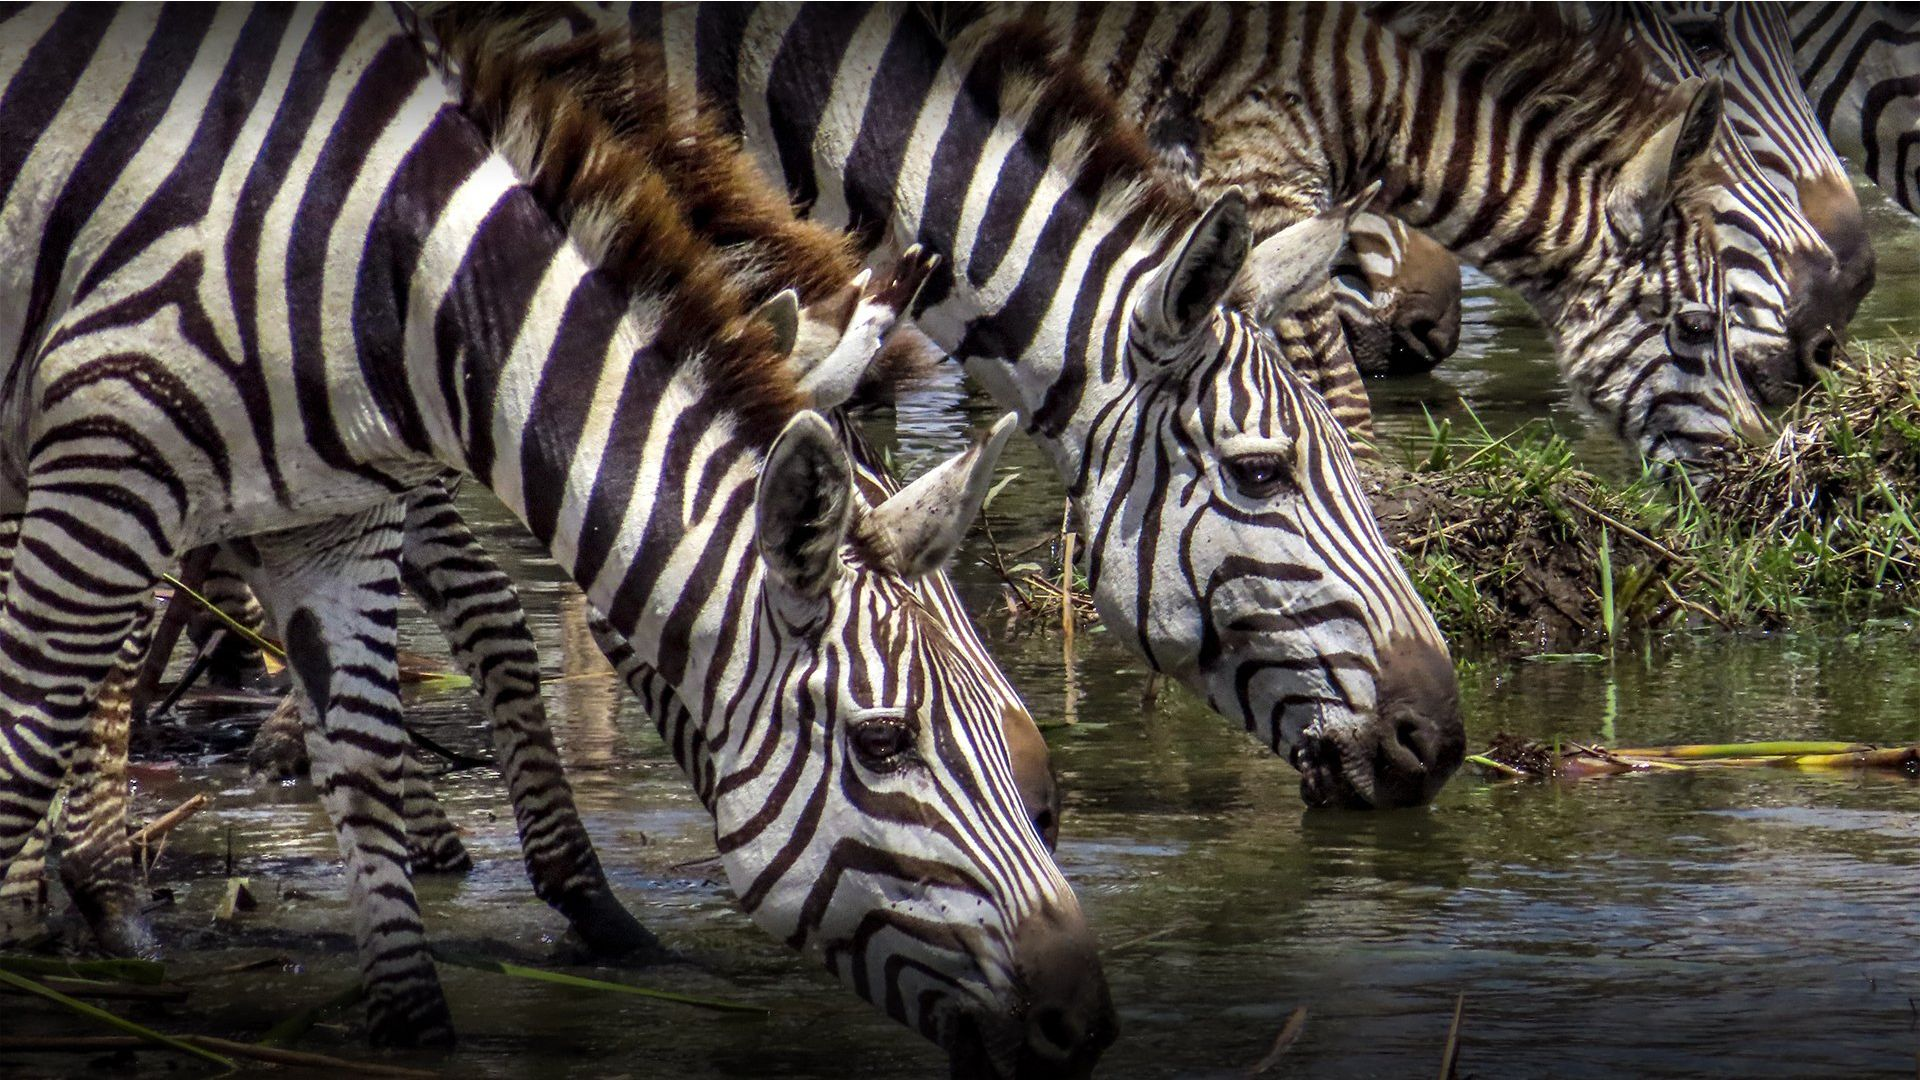 A herd of zebras at a watering hole in Nairobi National Park, Kenya taken by Georgina Goodwin.